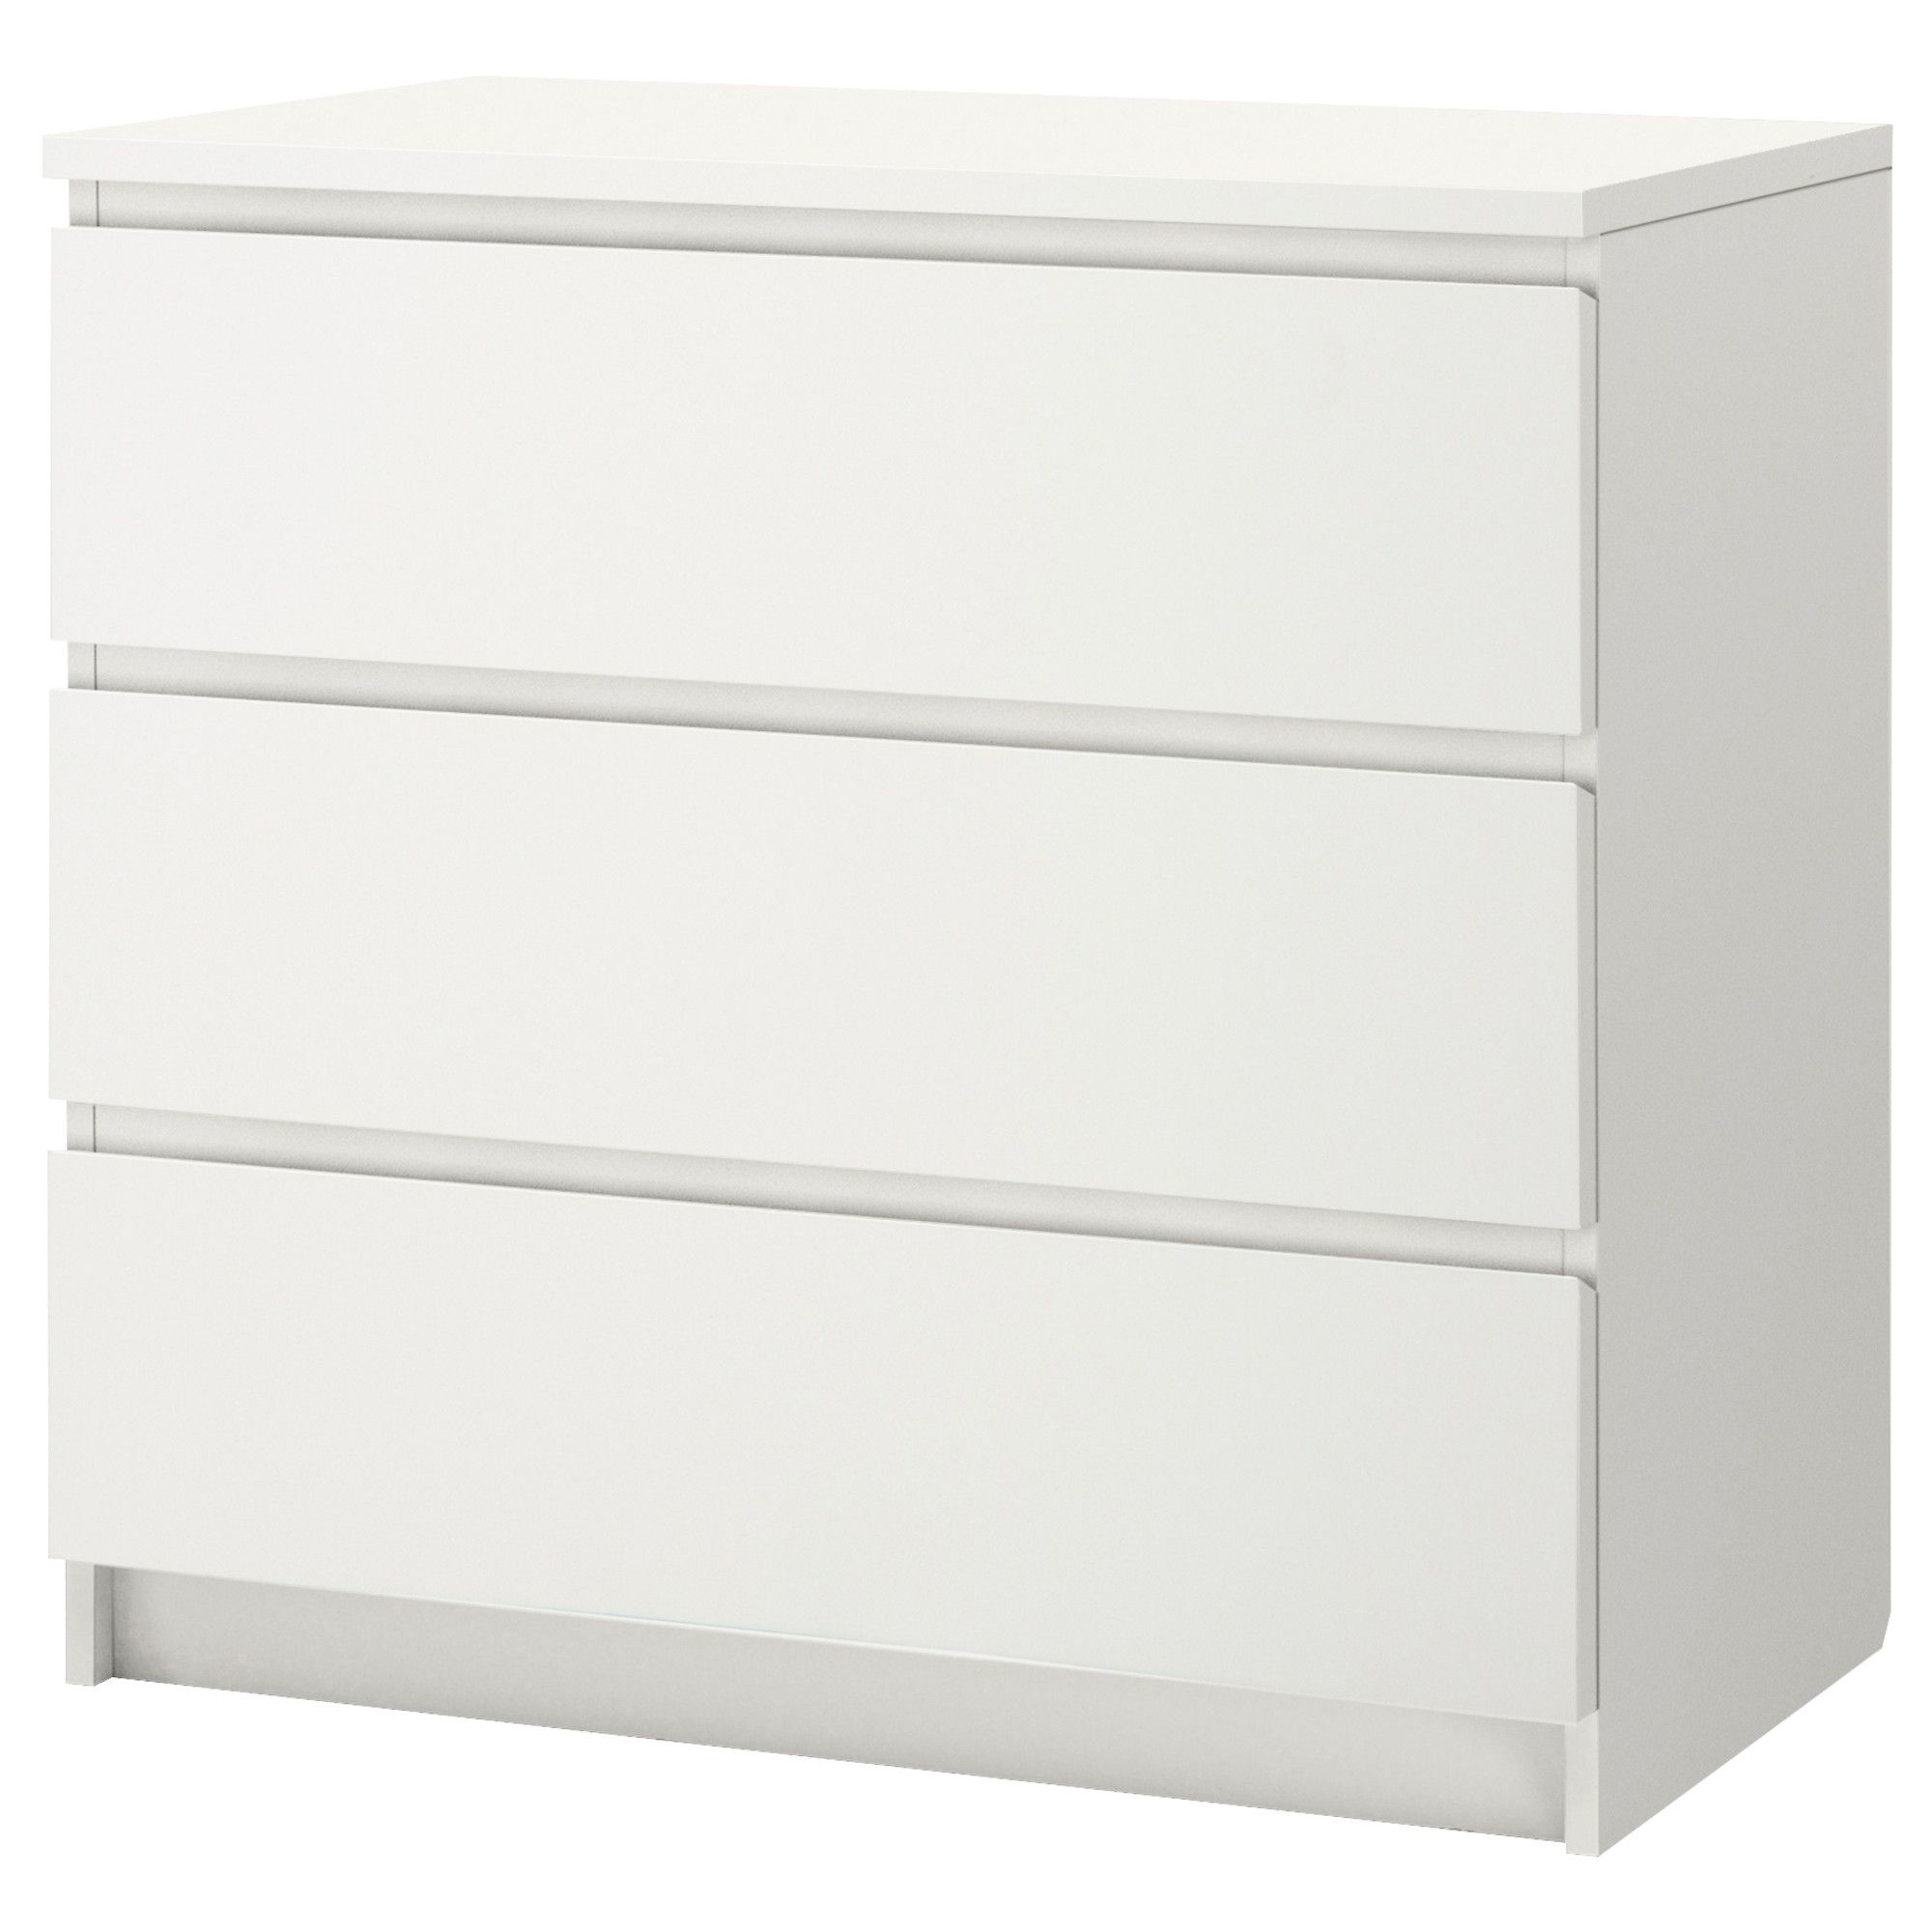 MALM Kommode mit 3 Schubladen, weiß | Pinterest | Malm, Drawers and ...